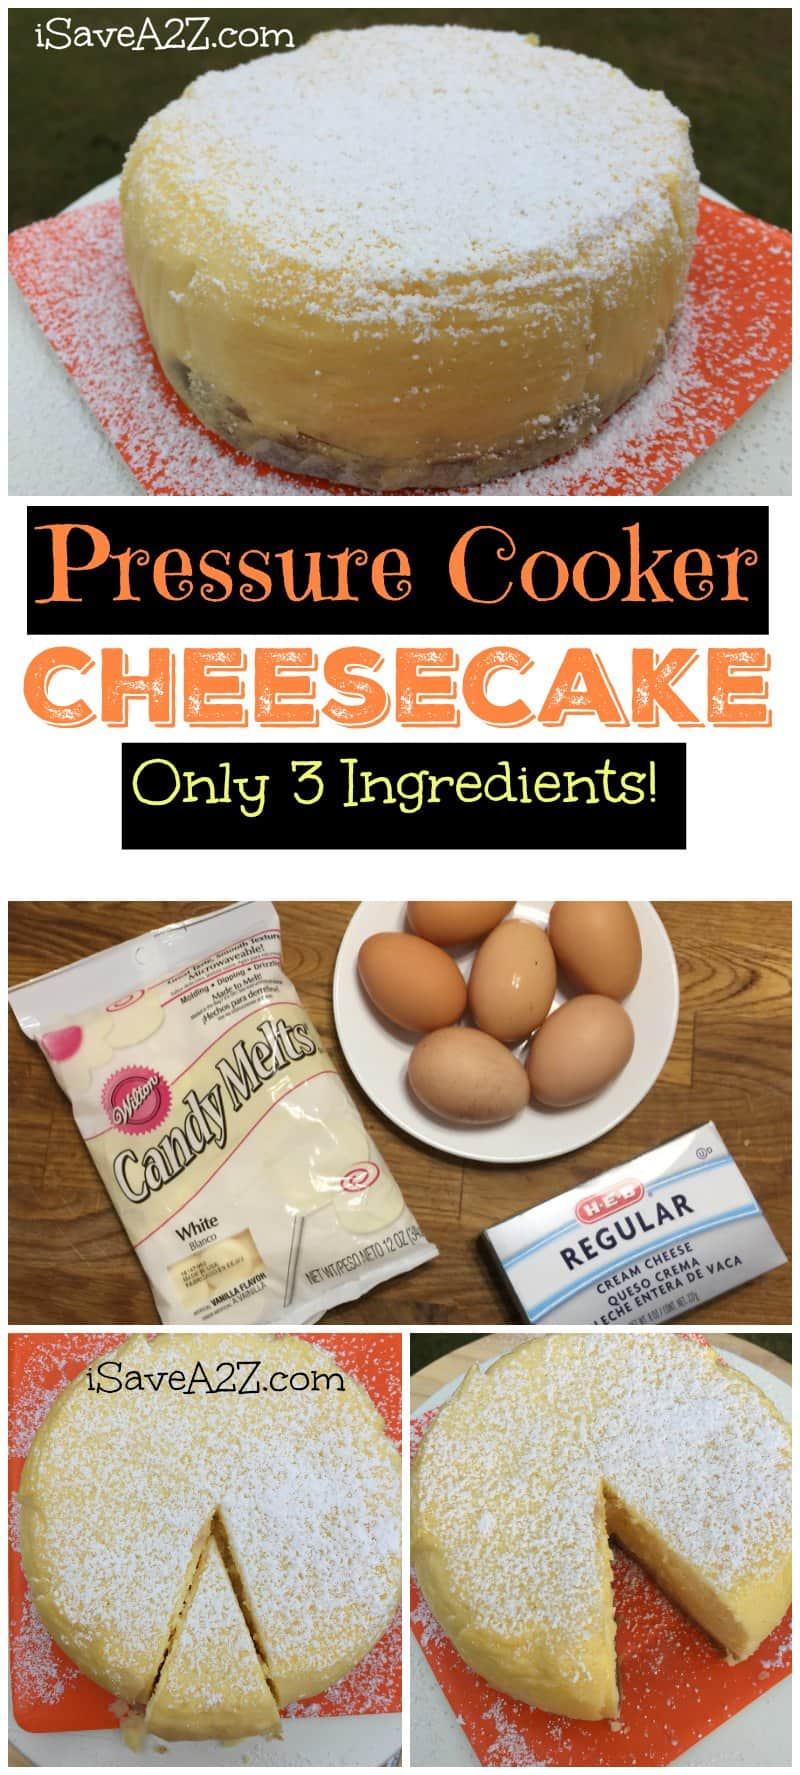 3 Ingredient Japanese Cheesecake made in the Pressure Cooker